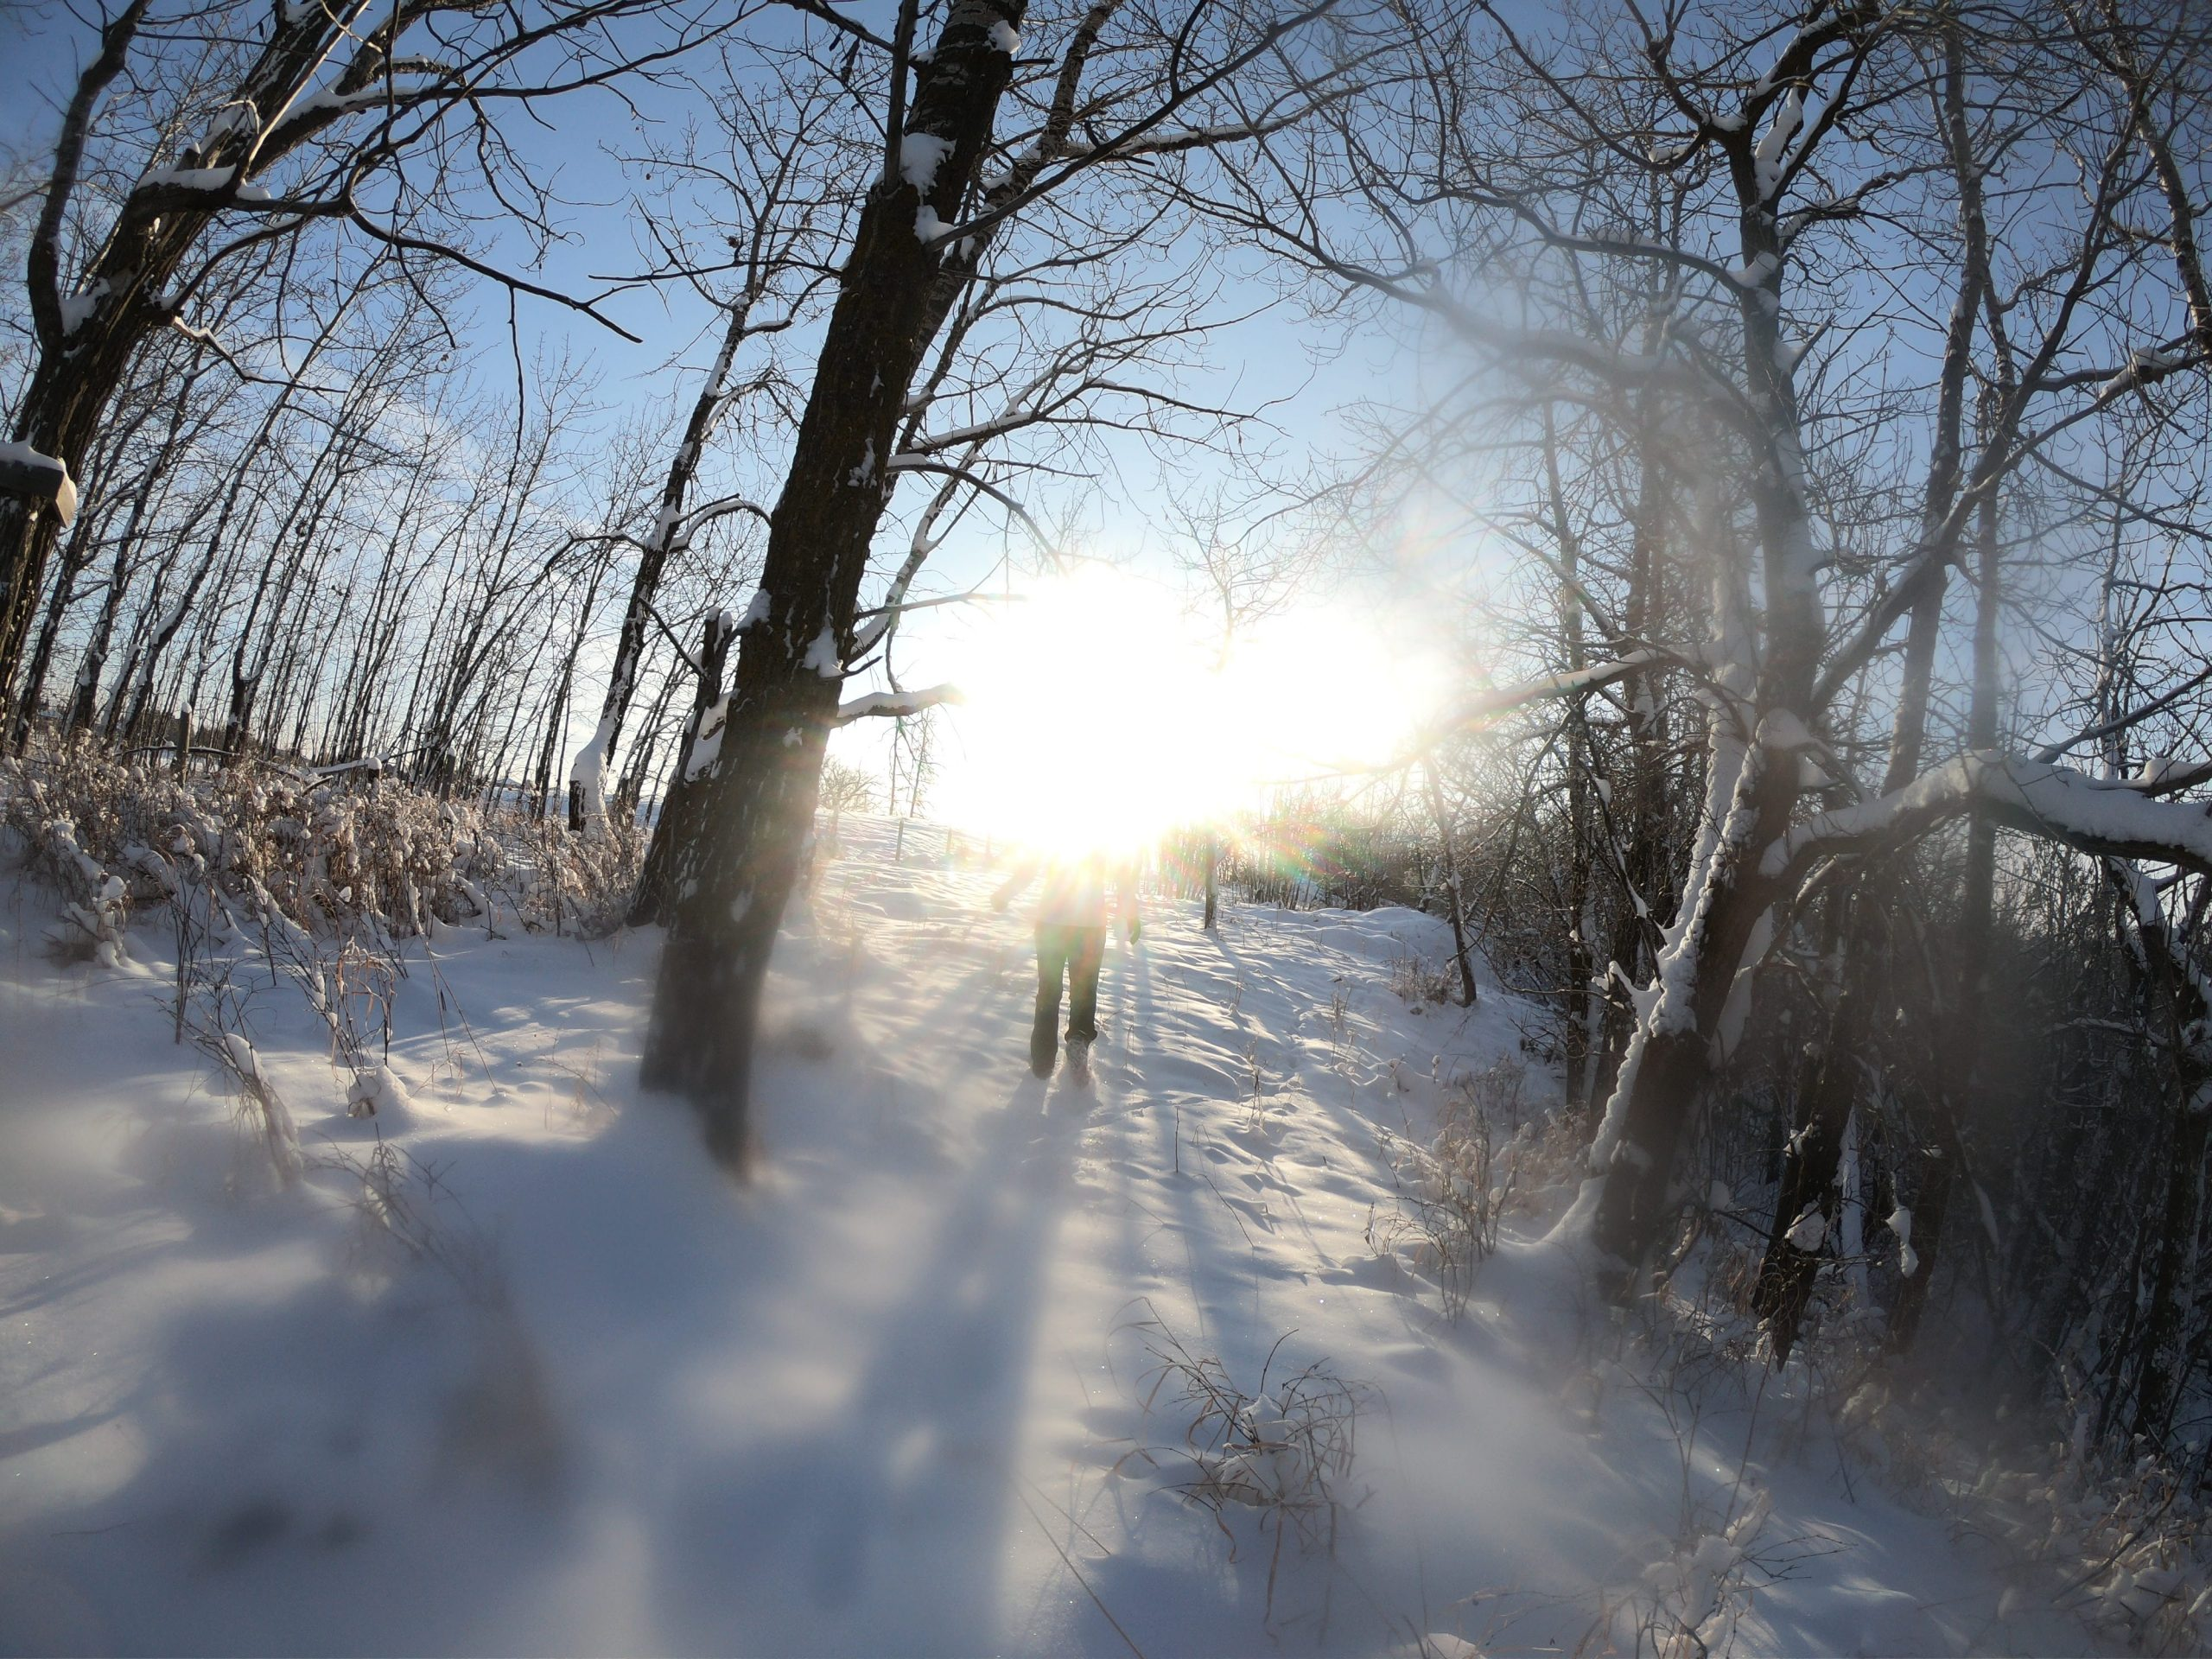 A bright sun blots out the silhouette of someone walking through snow covered trees.